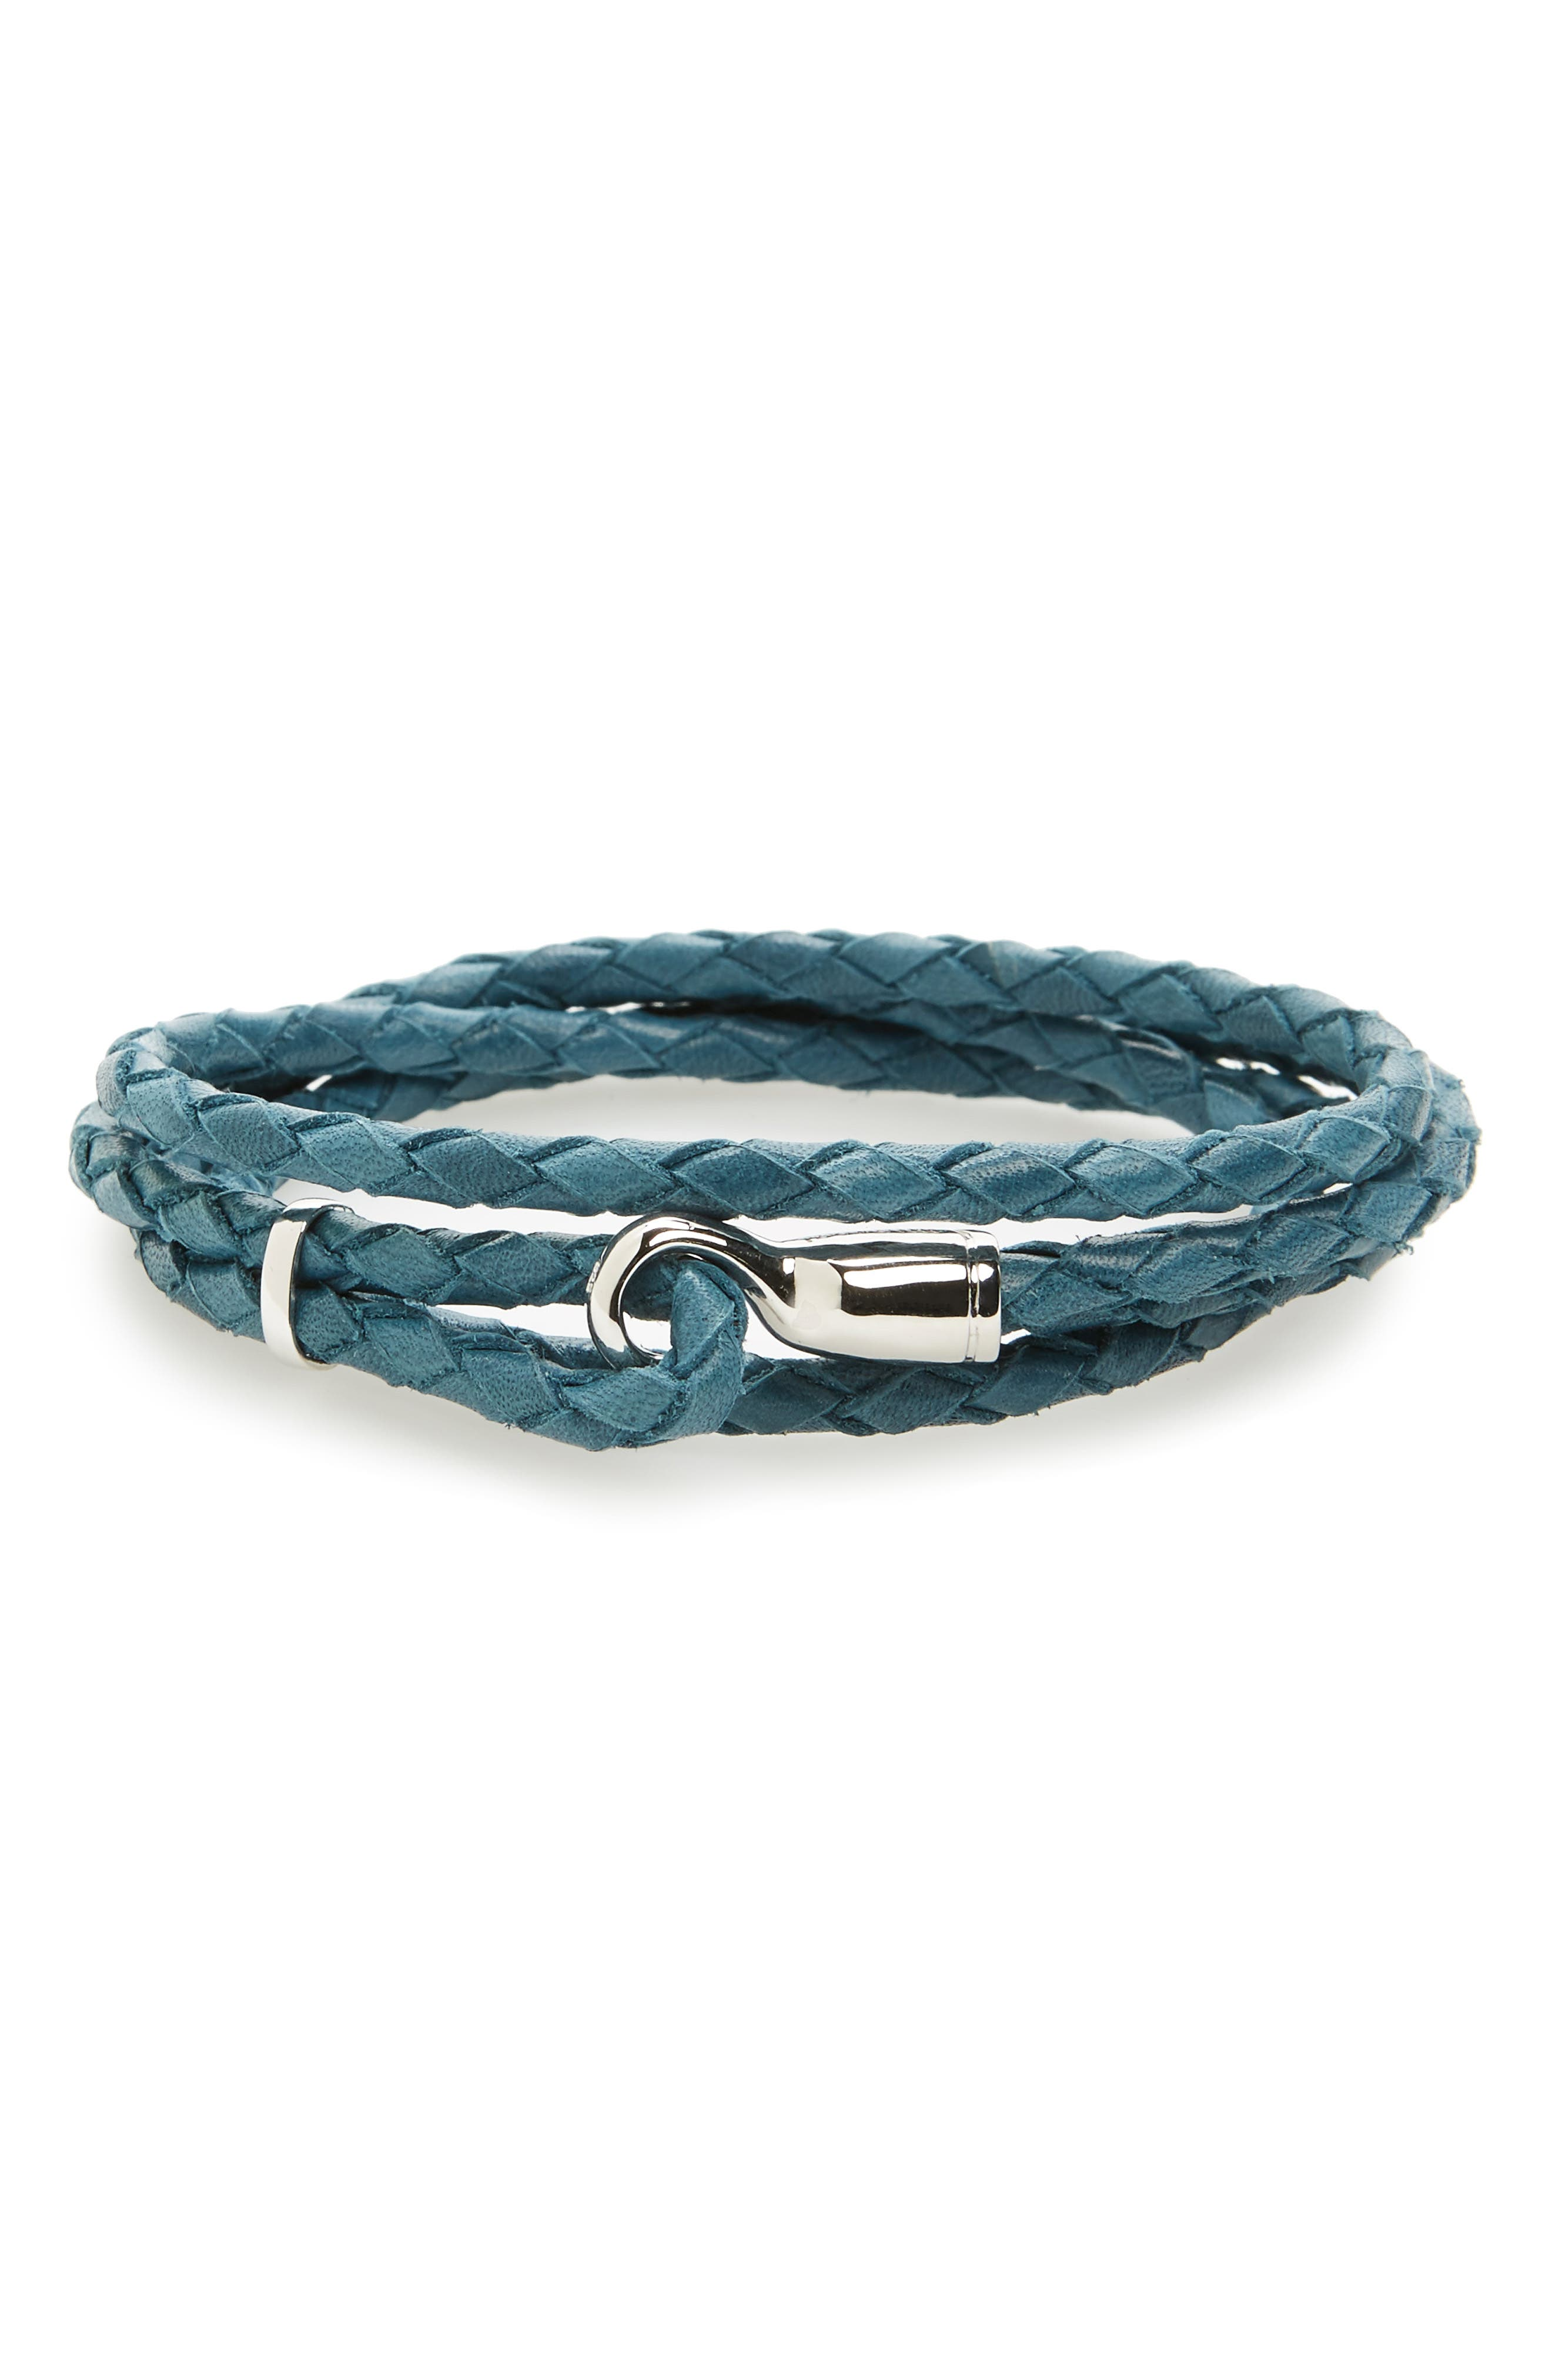 Main Image - Miansai Trice Braided Leather & Sterling Silver Bracelet